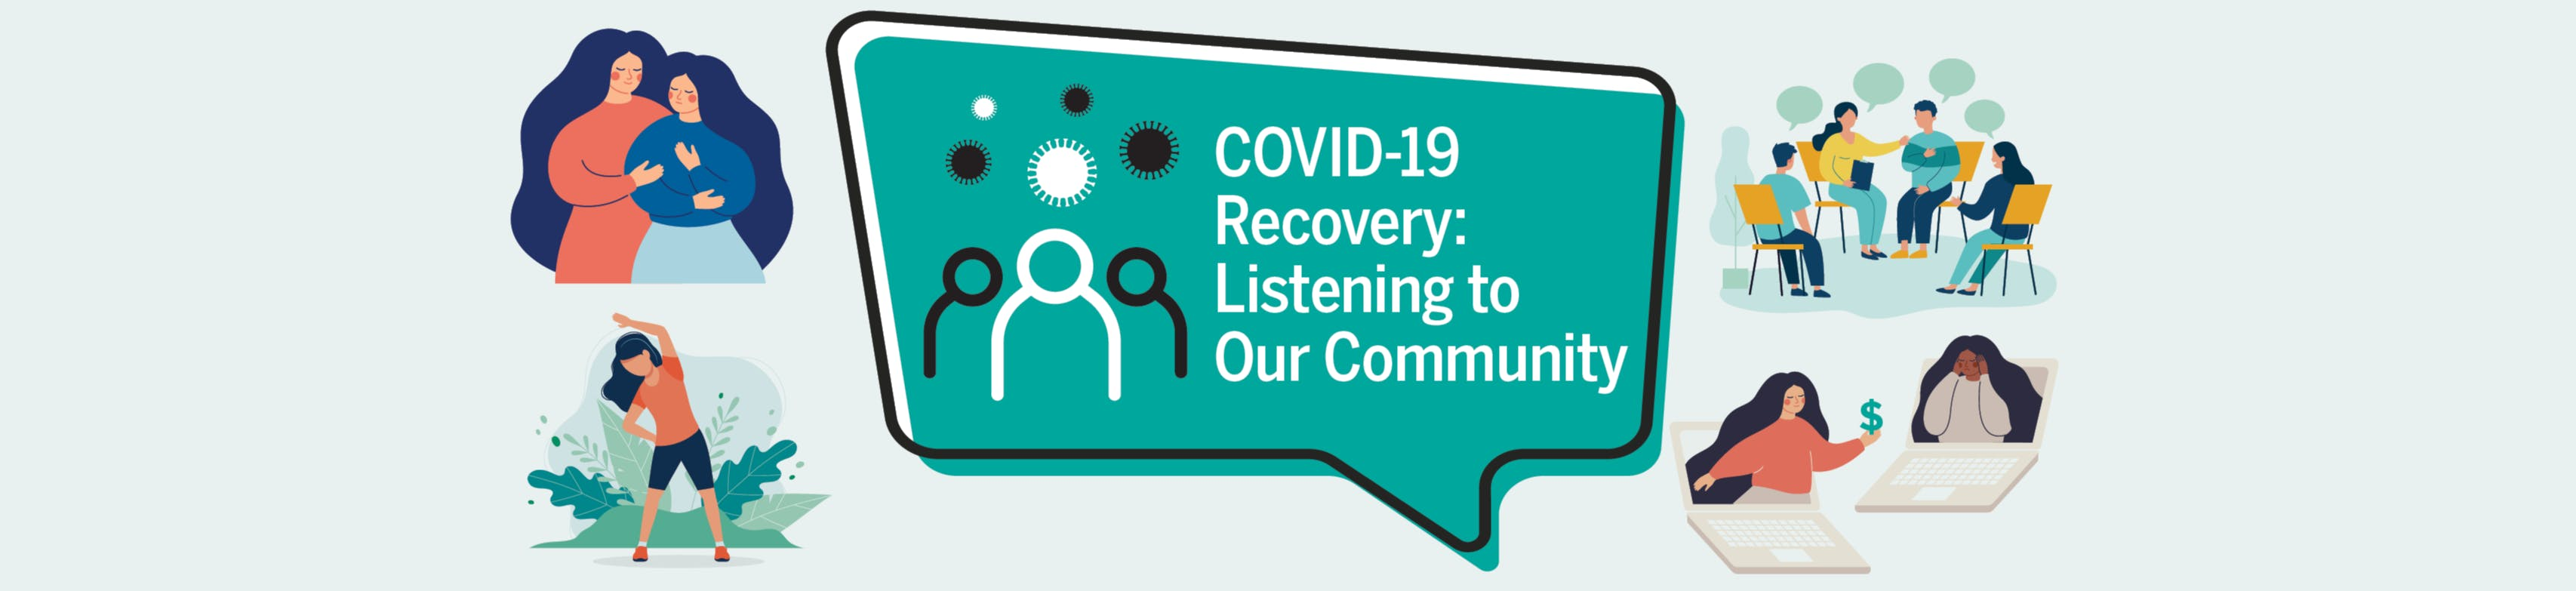 COVID-19 Recovery: Listening to Our Community with images of individuals supporting one another.